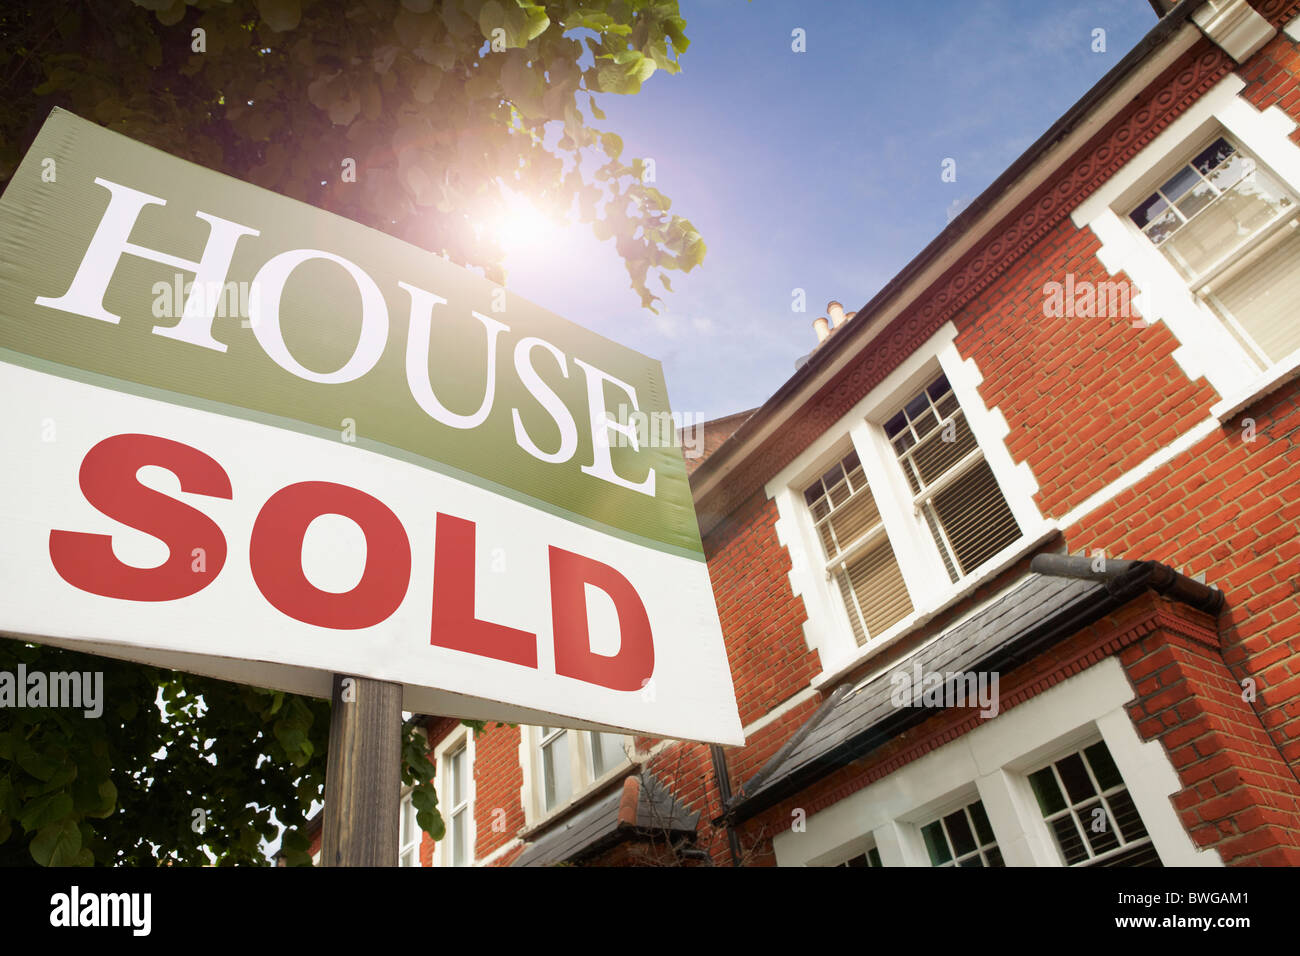 House with SOLD notice - Stock Image